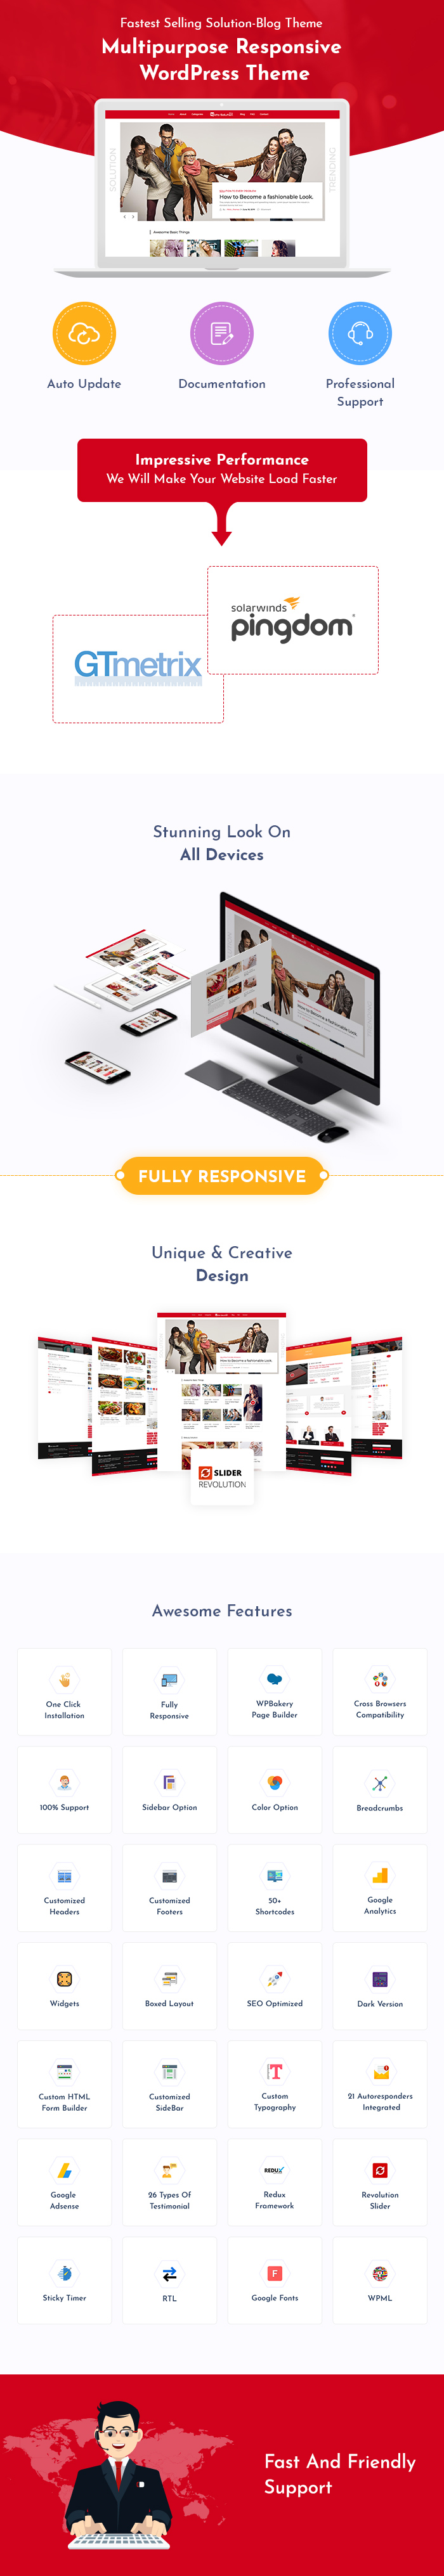 Solution Blog WordPress Themes